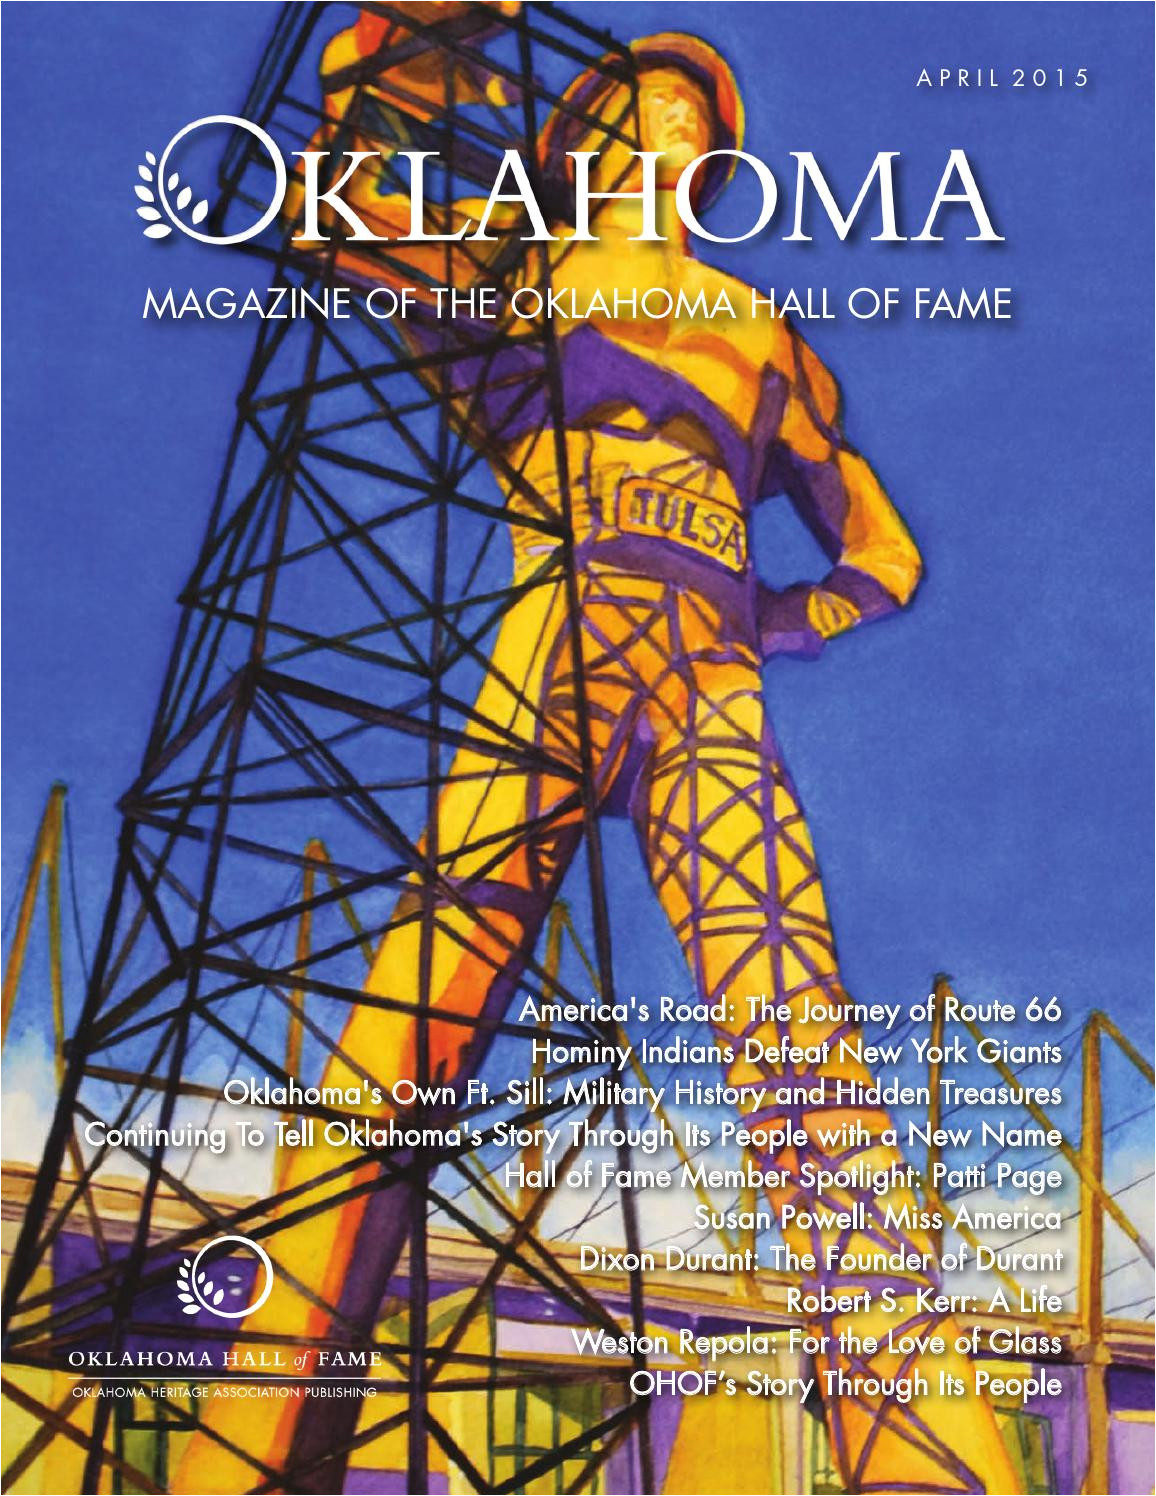 oklahoma magazine of the oklahoma hall of fame by oklahoma hall of fame issuu